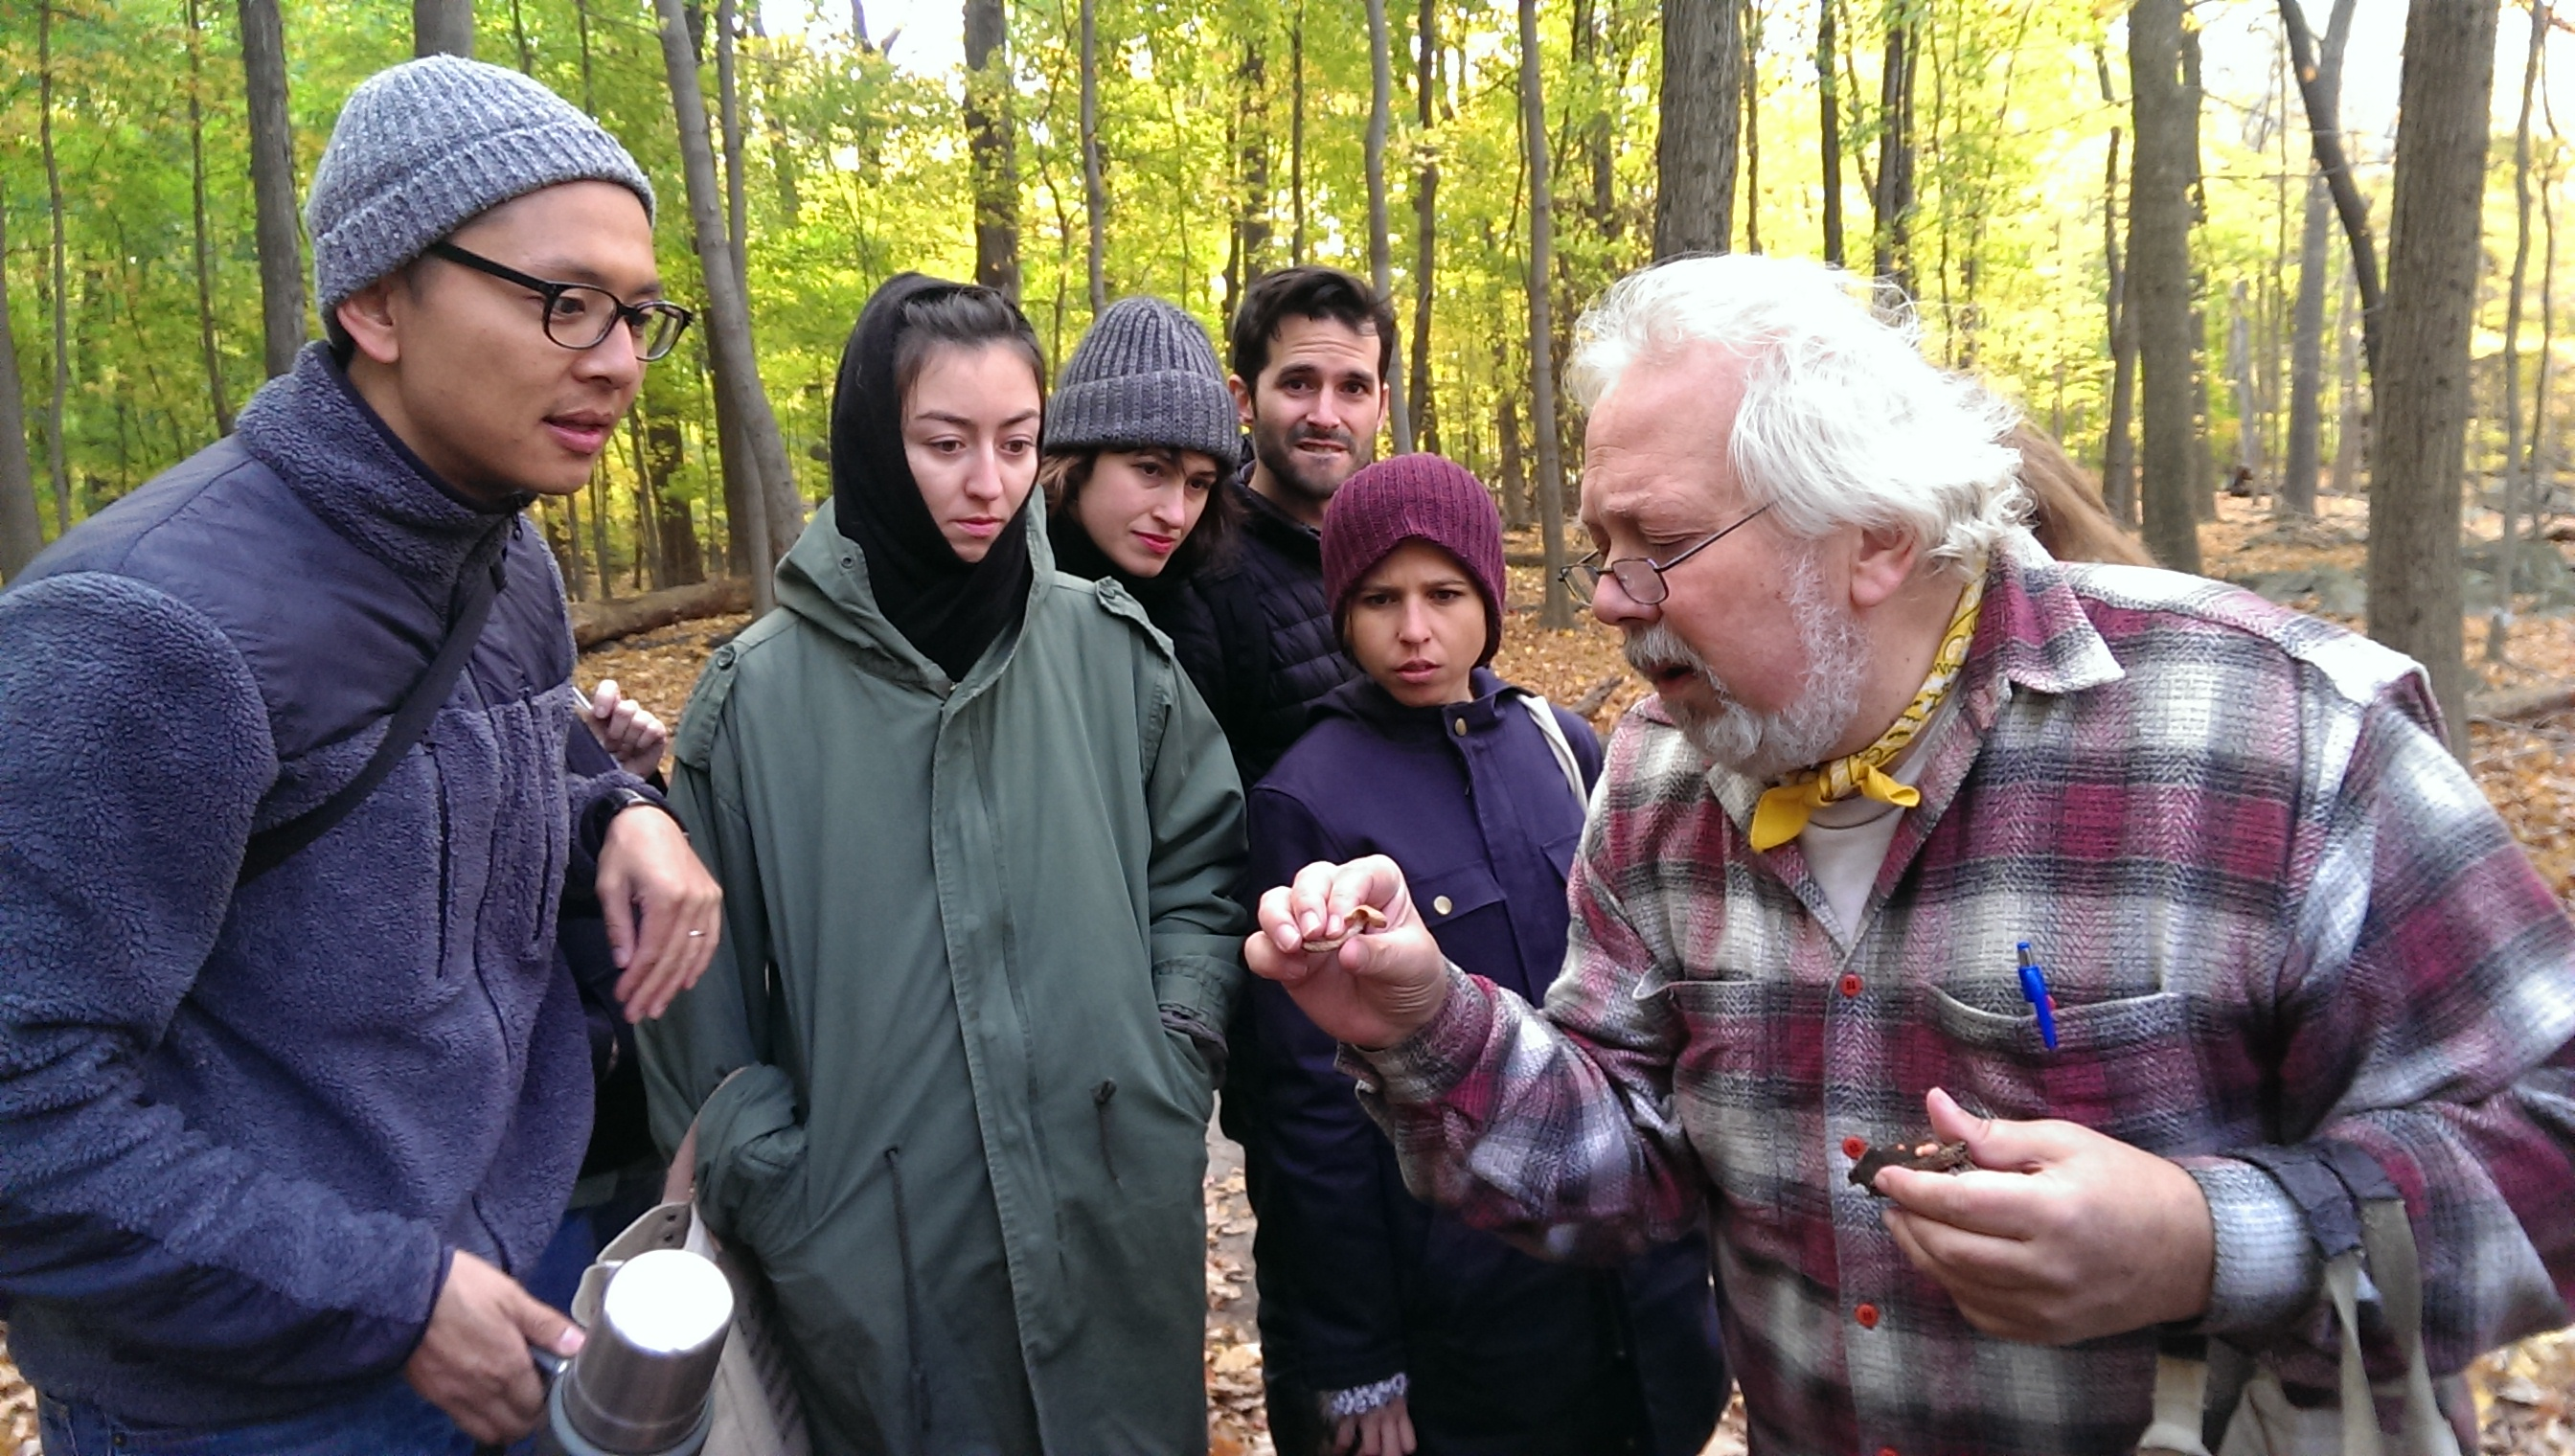 Gary Lincoff, author of The Audubon Society Field Guide to North American Mushrooms, helps my fellow mushrooms hunters identify their finds in the woods of Piermont, NY.